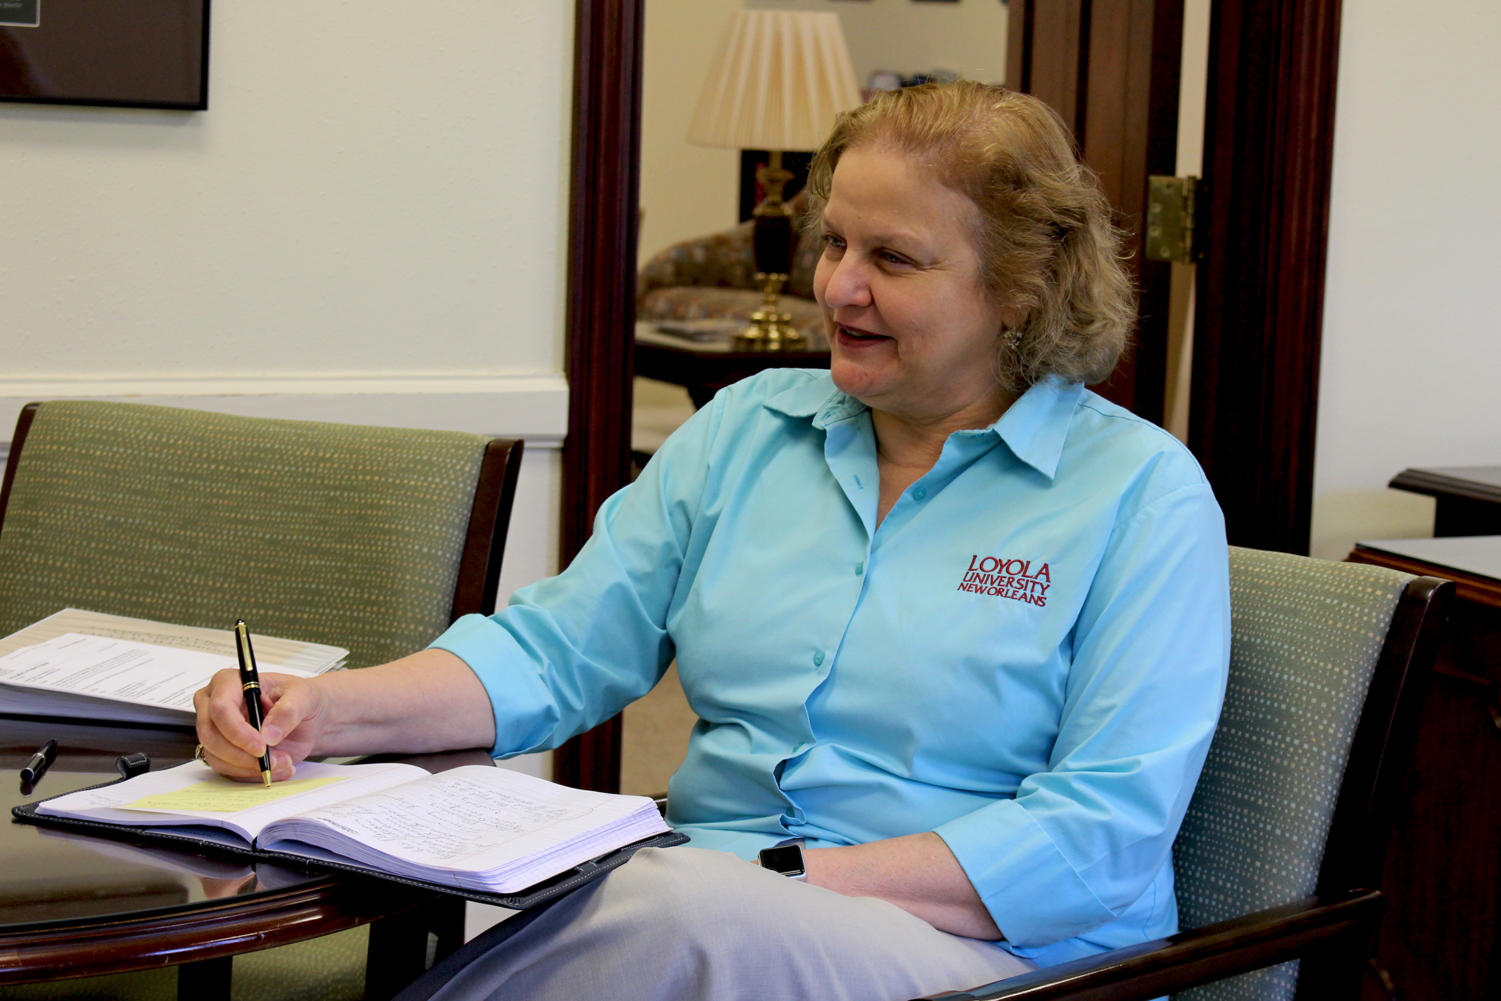 Interim provost Maria Calzada in her office in a meeting on September 5. Calzada wishes to bring awareness to Hispanic Heritage Month on Loyola's campus. Photo credit: Alexis Reyes